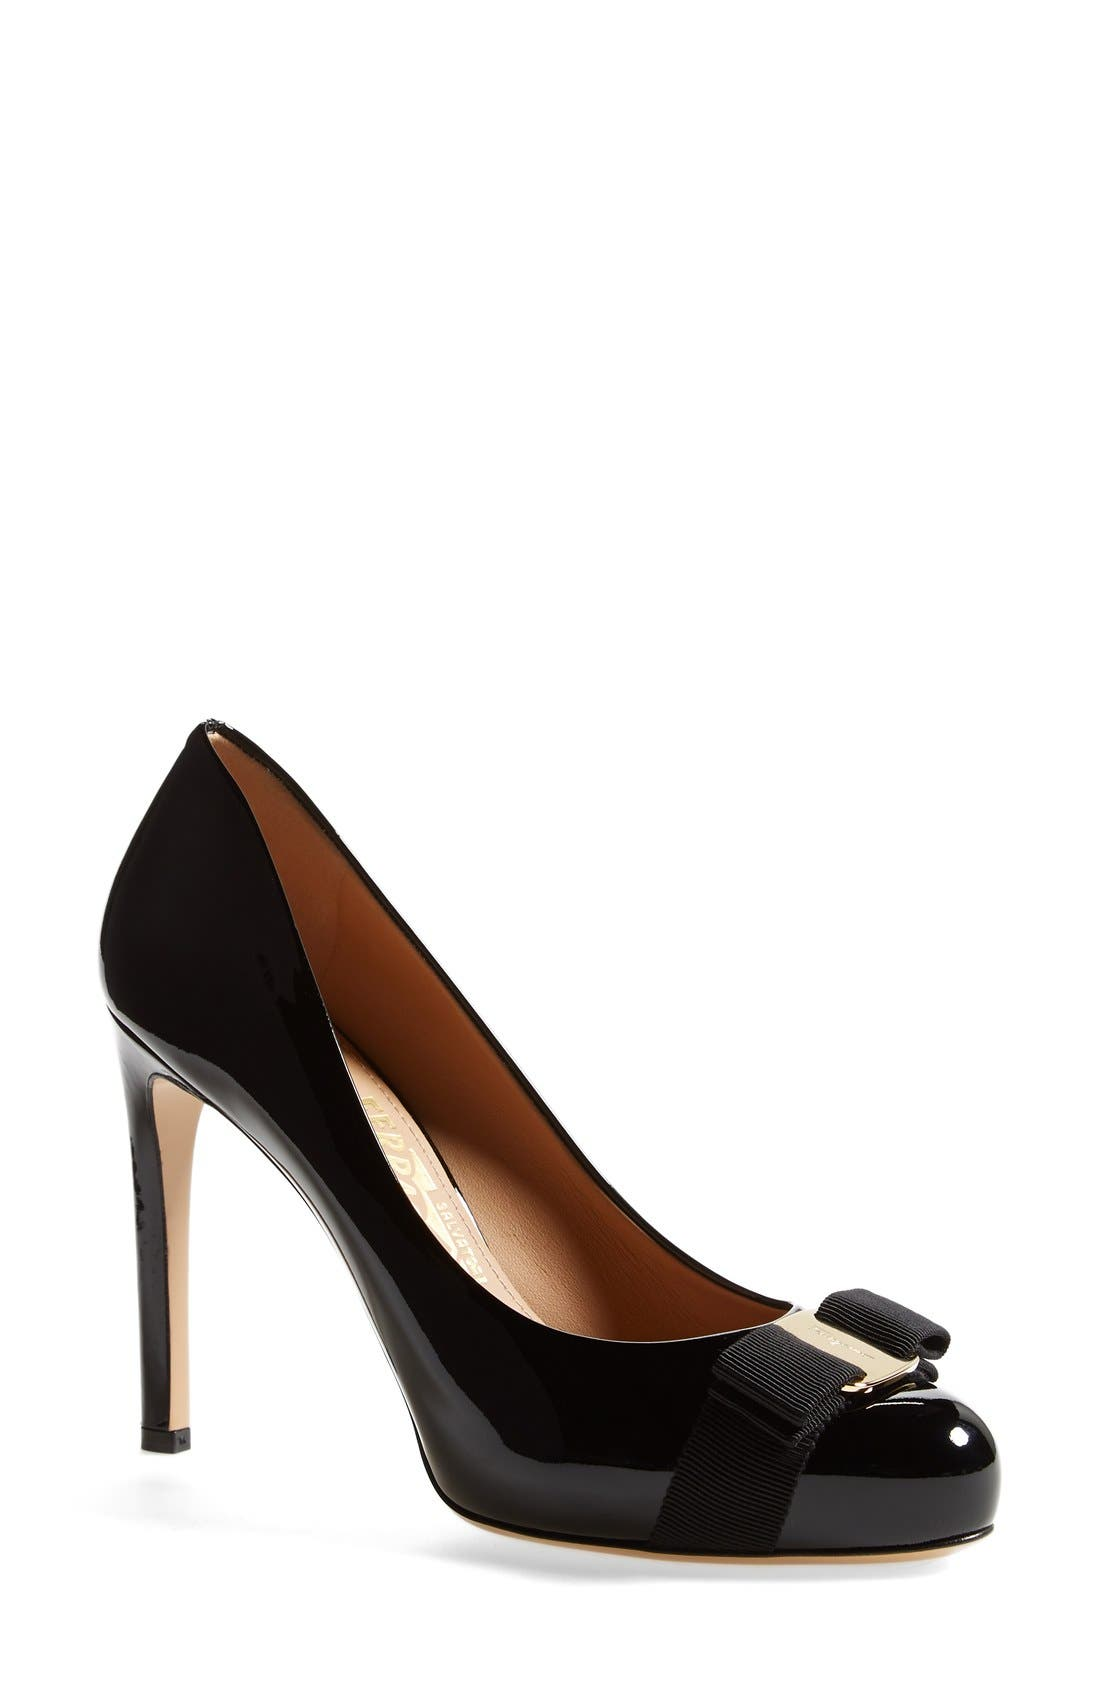 Pimpa Rounded Toe Bow Pump,                             Main thumbnail 1, color,                             Nero Patent